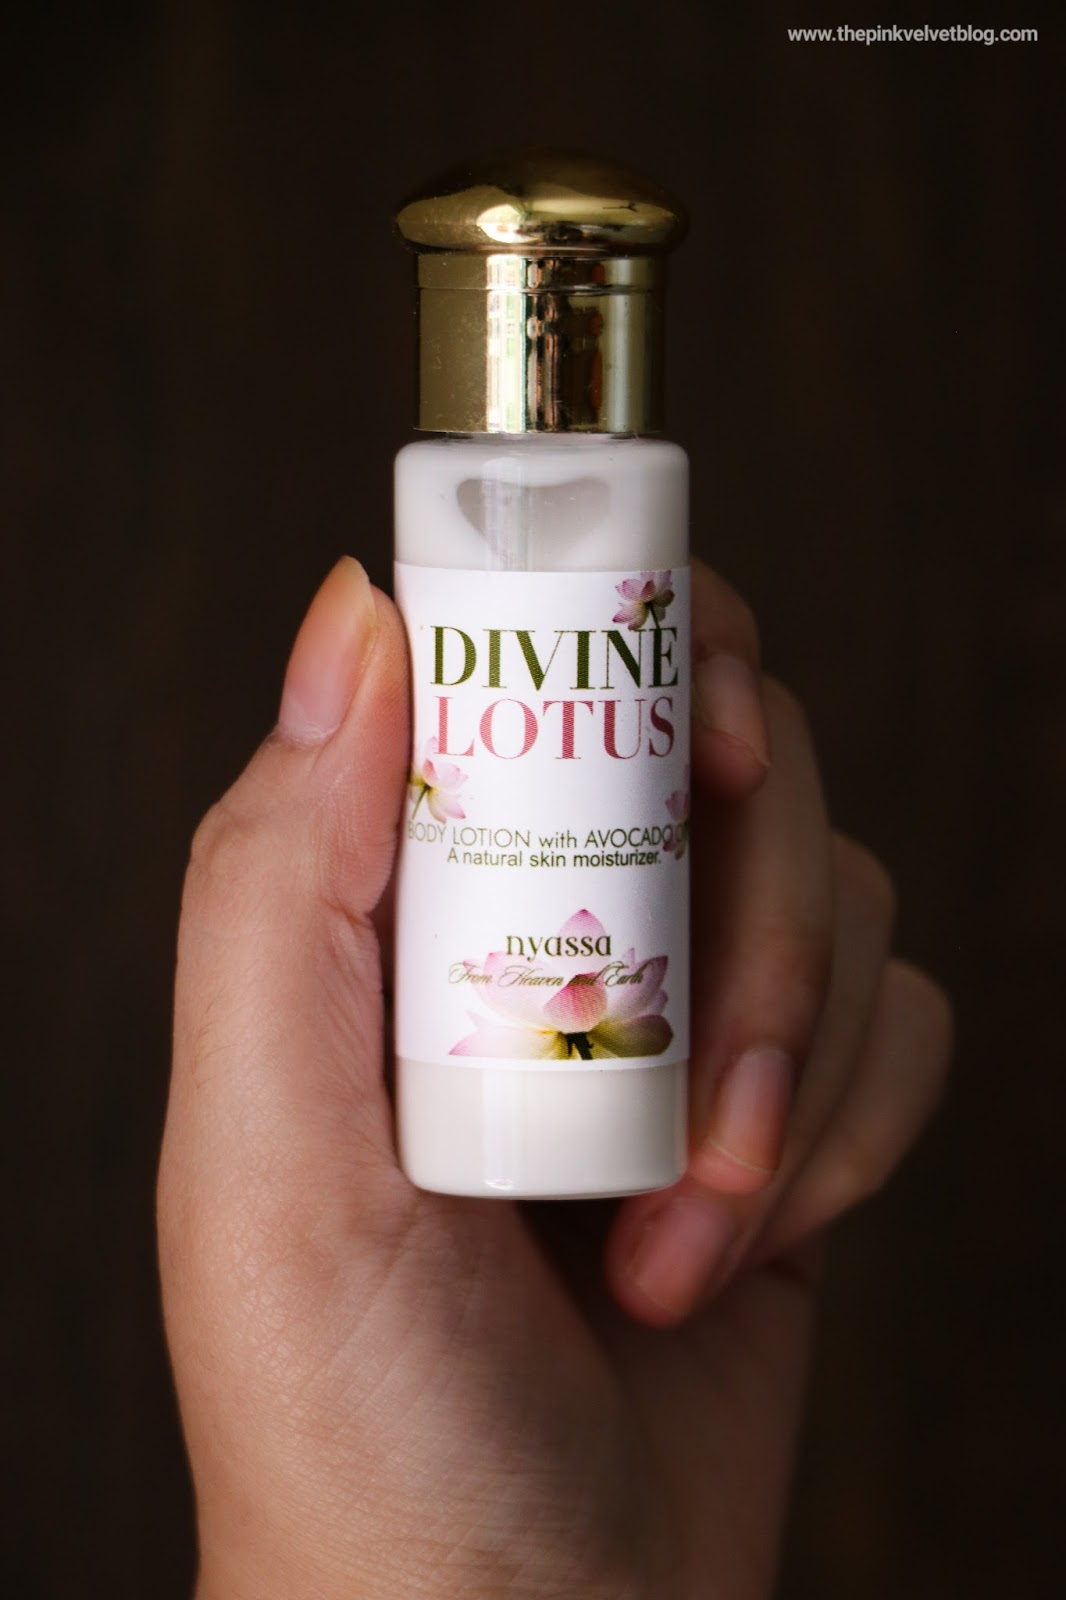 Nyasa - Divine Lotus Body Lotion